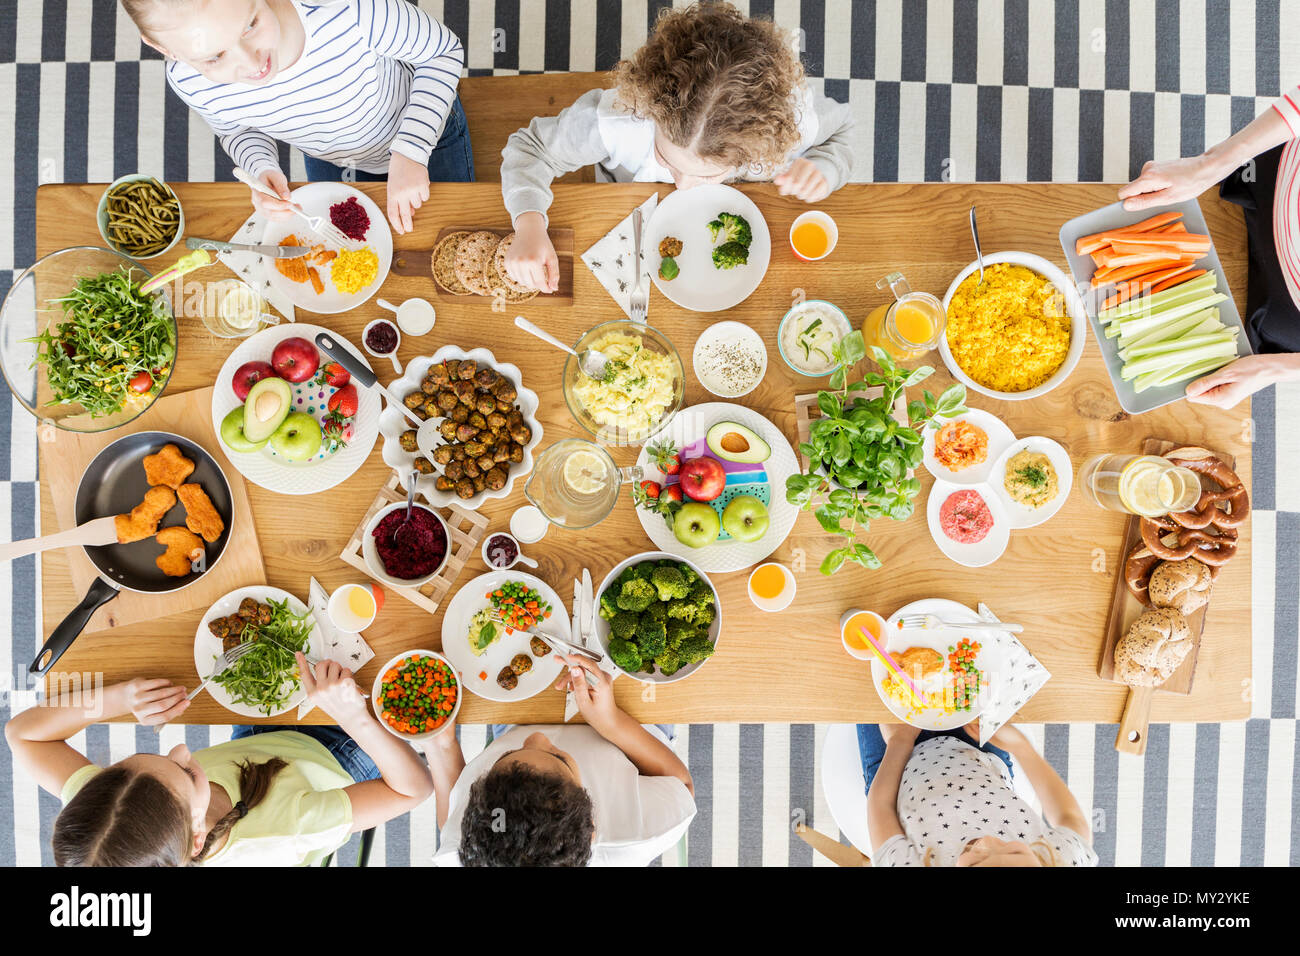 Top view on children eating healthy food during friend's birthday party - Stock Image